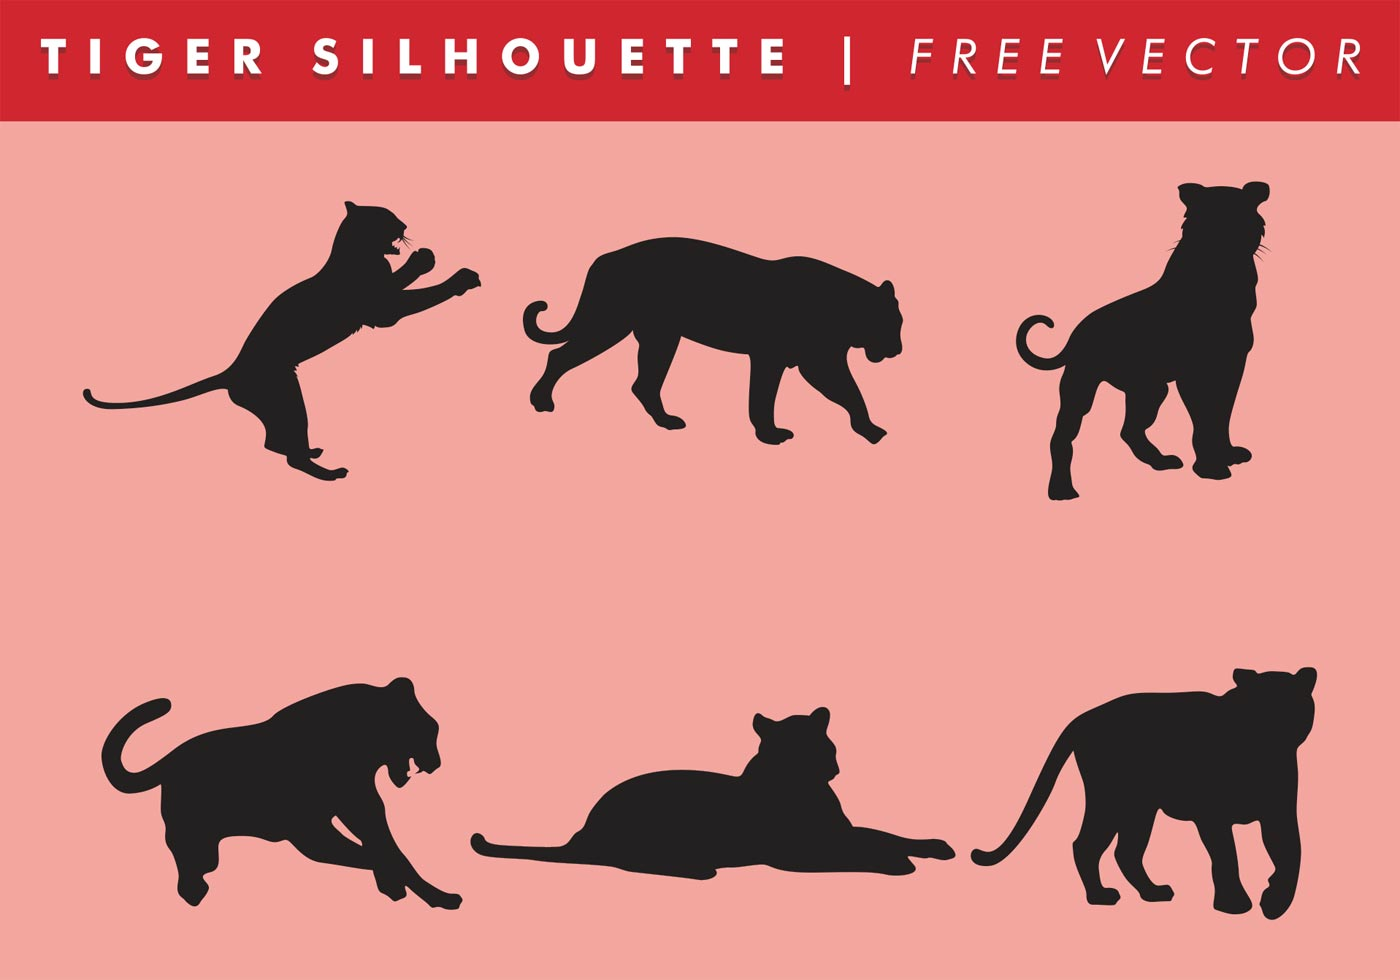 Tiger Silhouette Vector Free - Download Free Vector Art, Stock ...